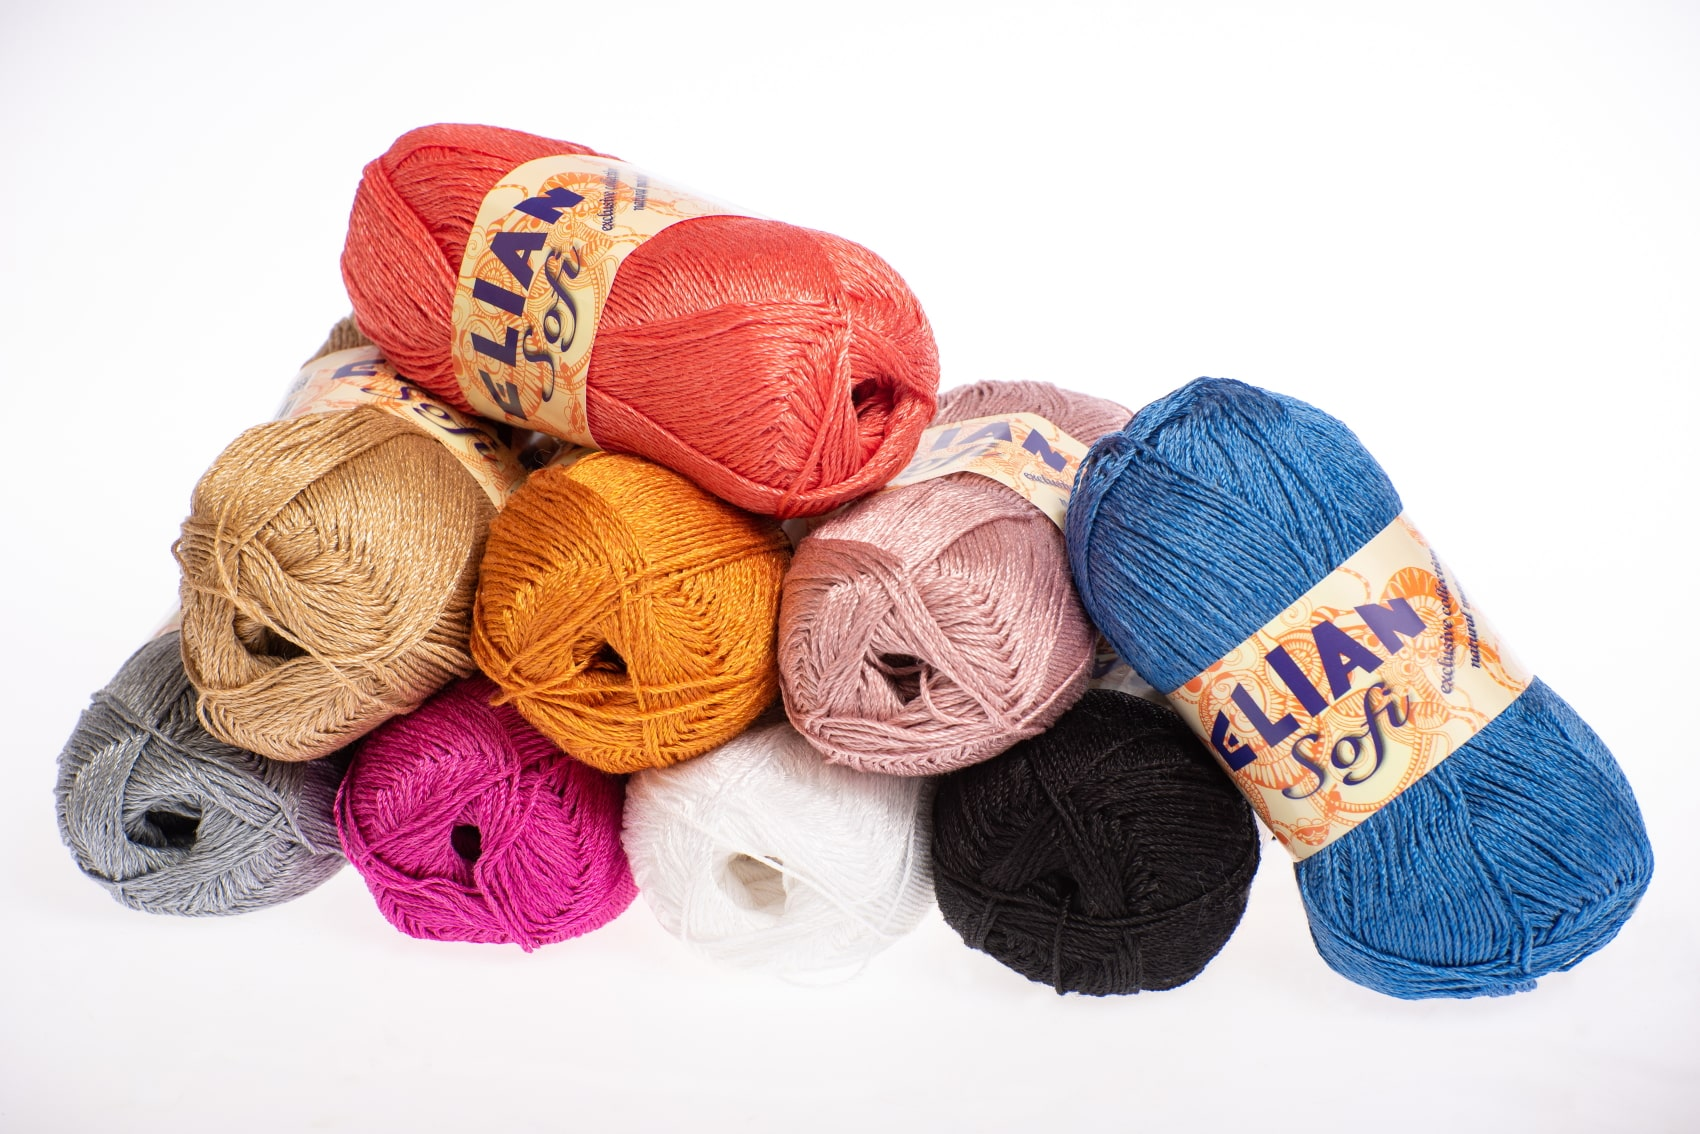 Knitting yarn for spring and summer - we recommend natural materials